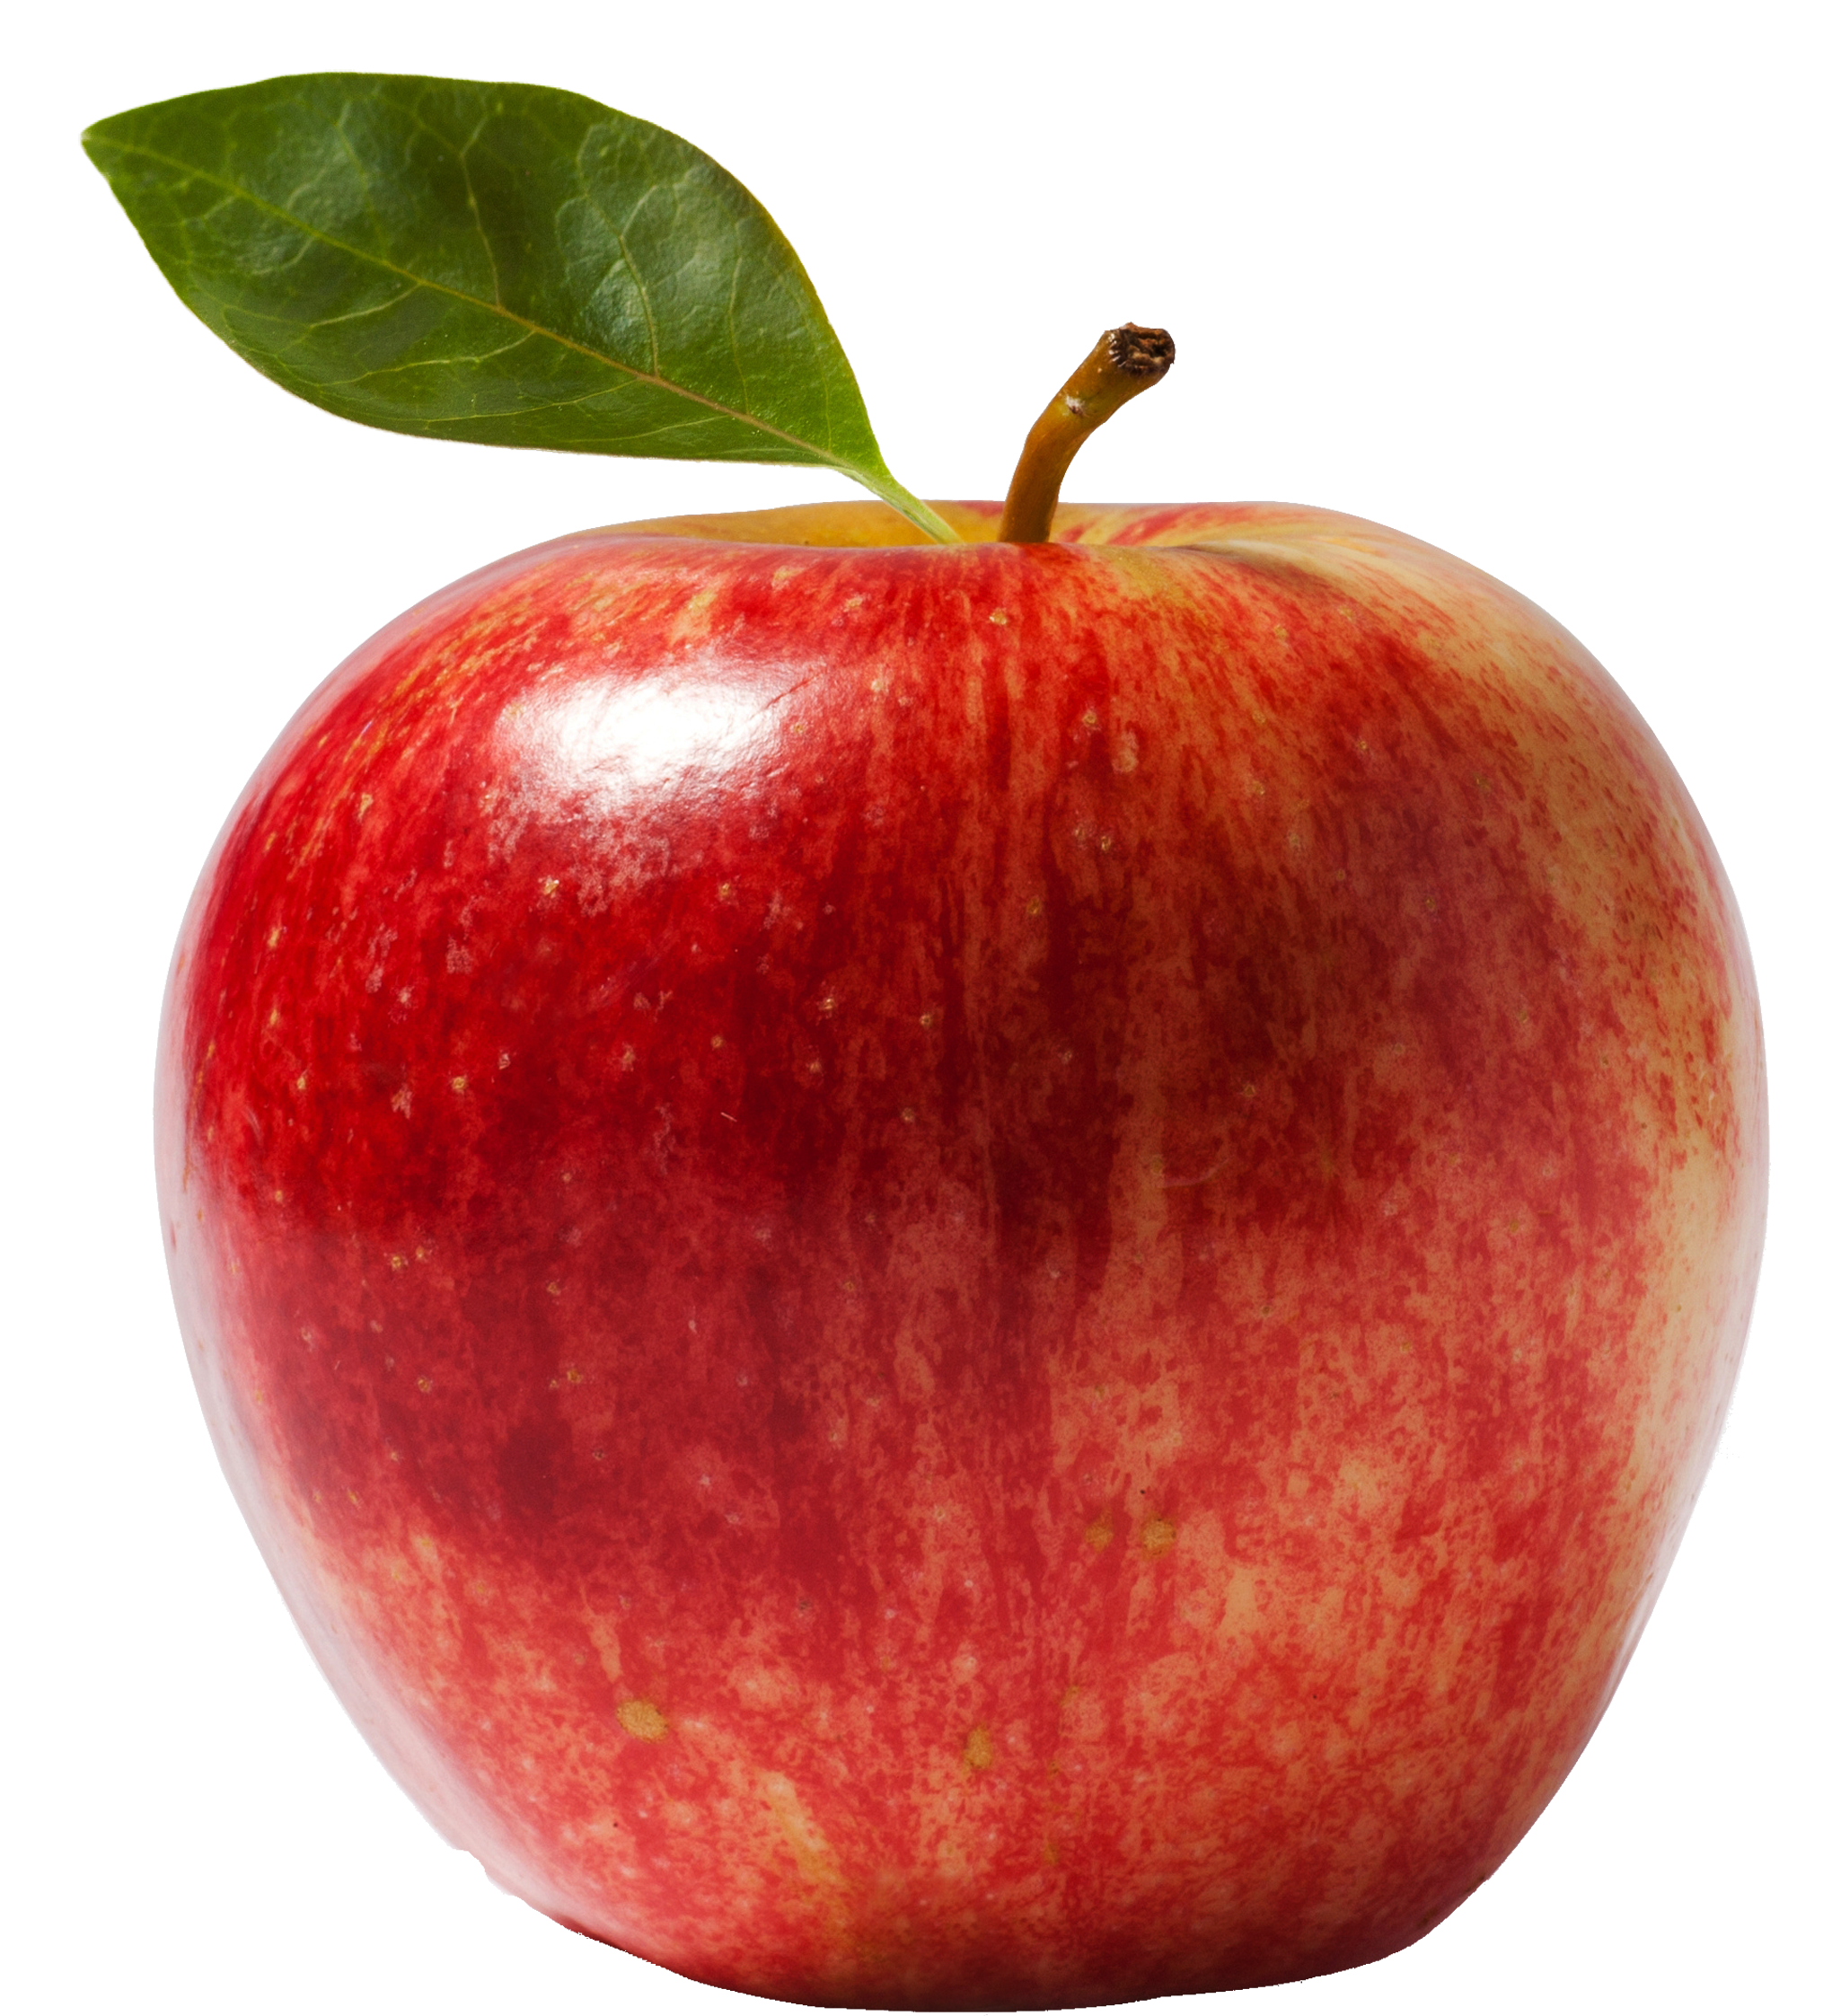 Red Apple PNG Image.